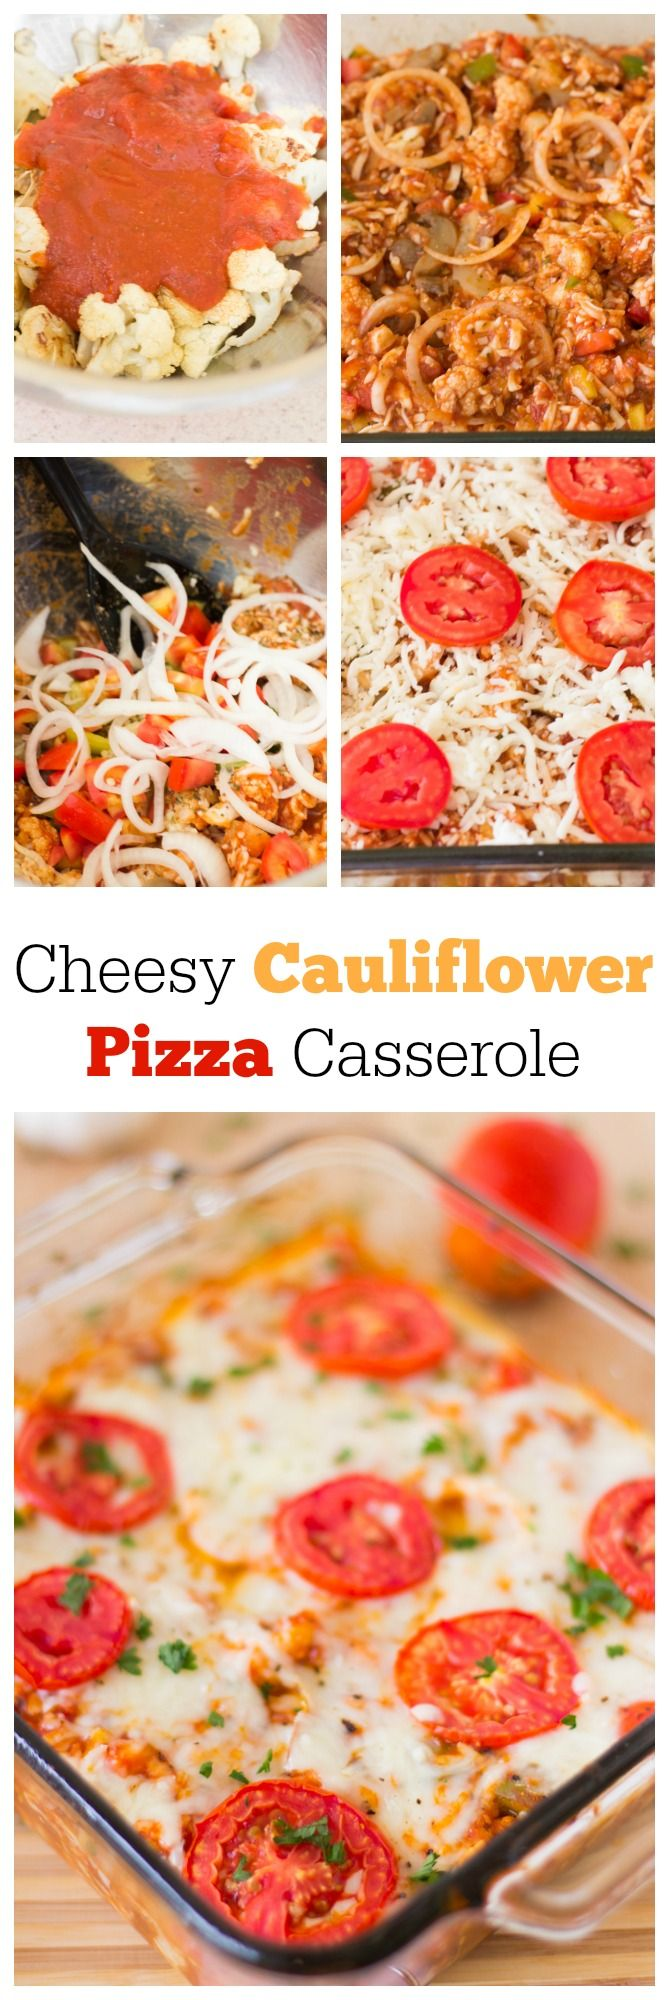 Cauliflower Pizza Casserole is a cheesy, easy vegetarian dish for dinner that you can fill with all your favourite pizza toppings! #vegetarian #cauliflower #dinner #pizza